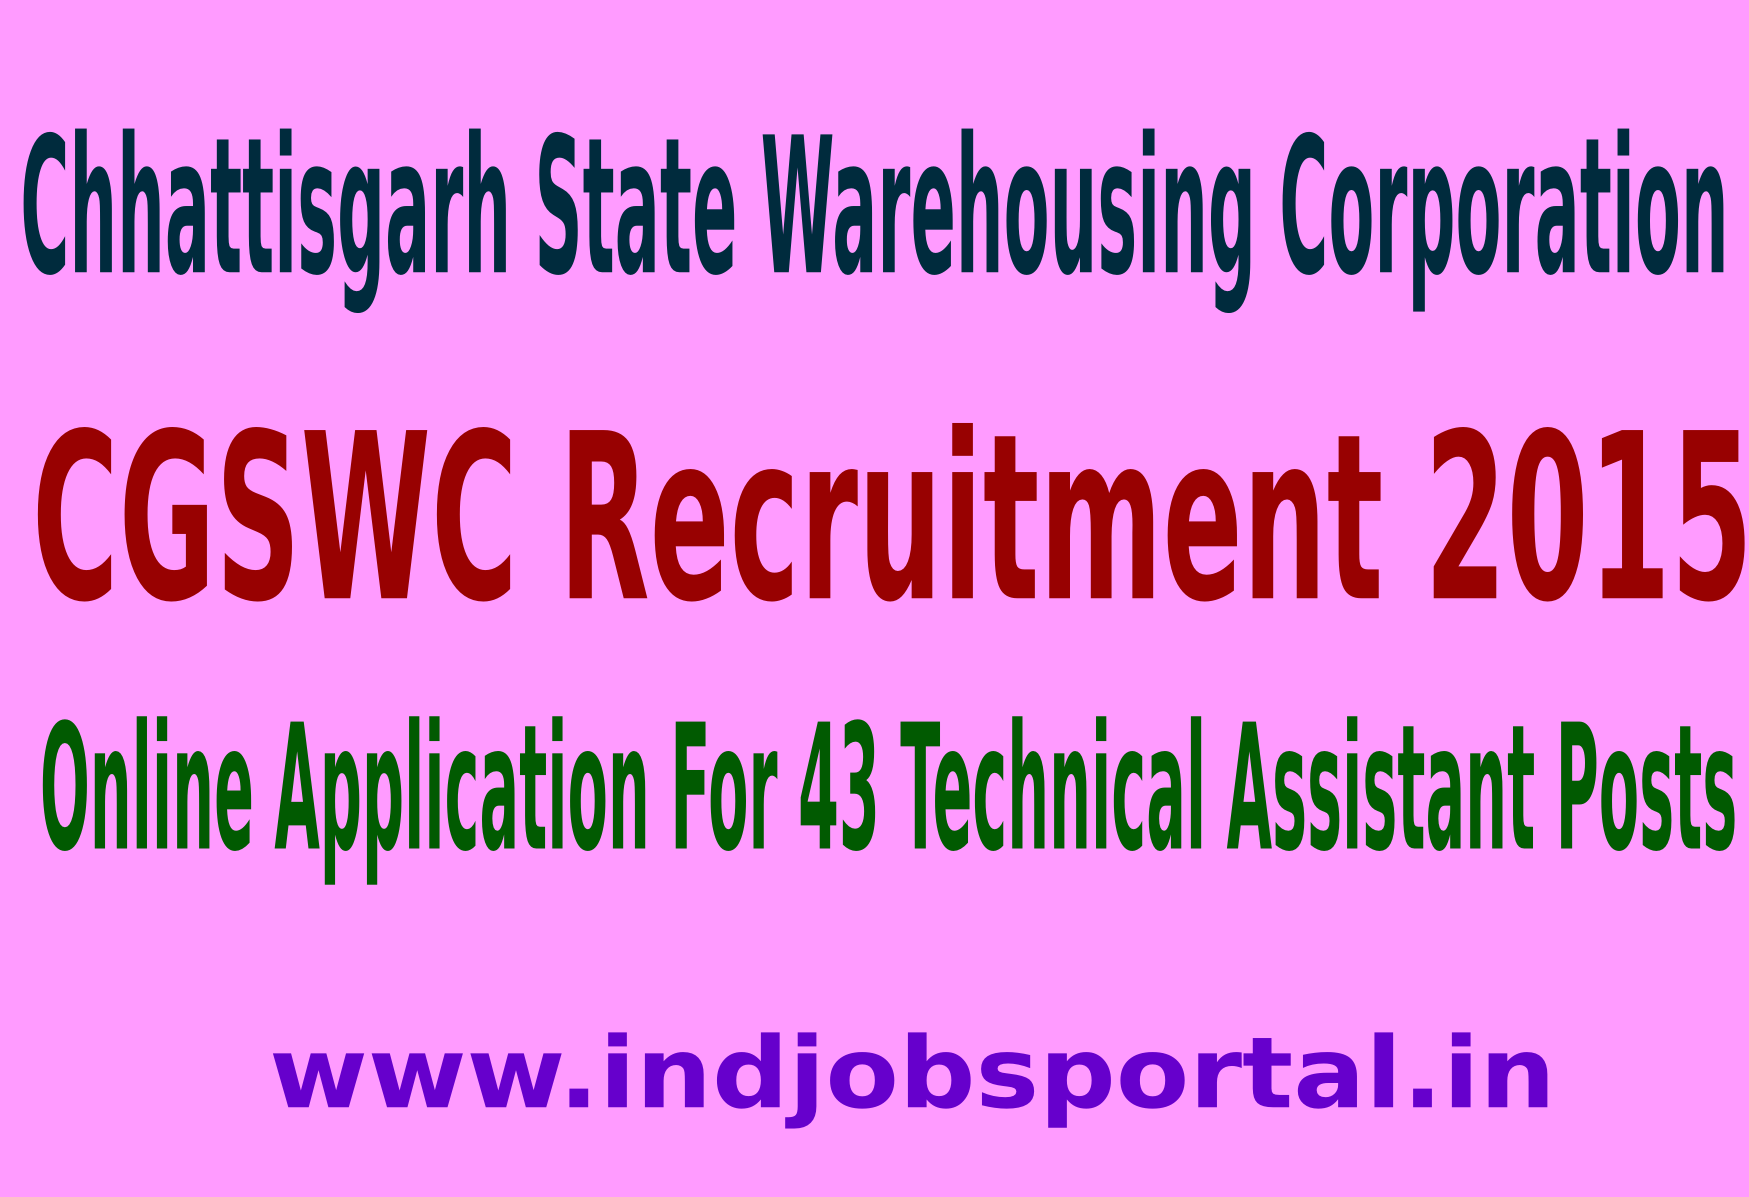 CGSWC Recruitment 2015 Online Application For 43 Technical Assistant Posts